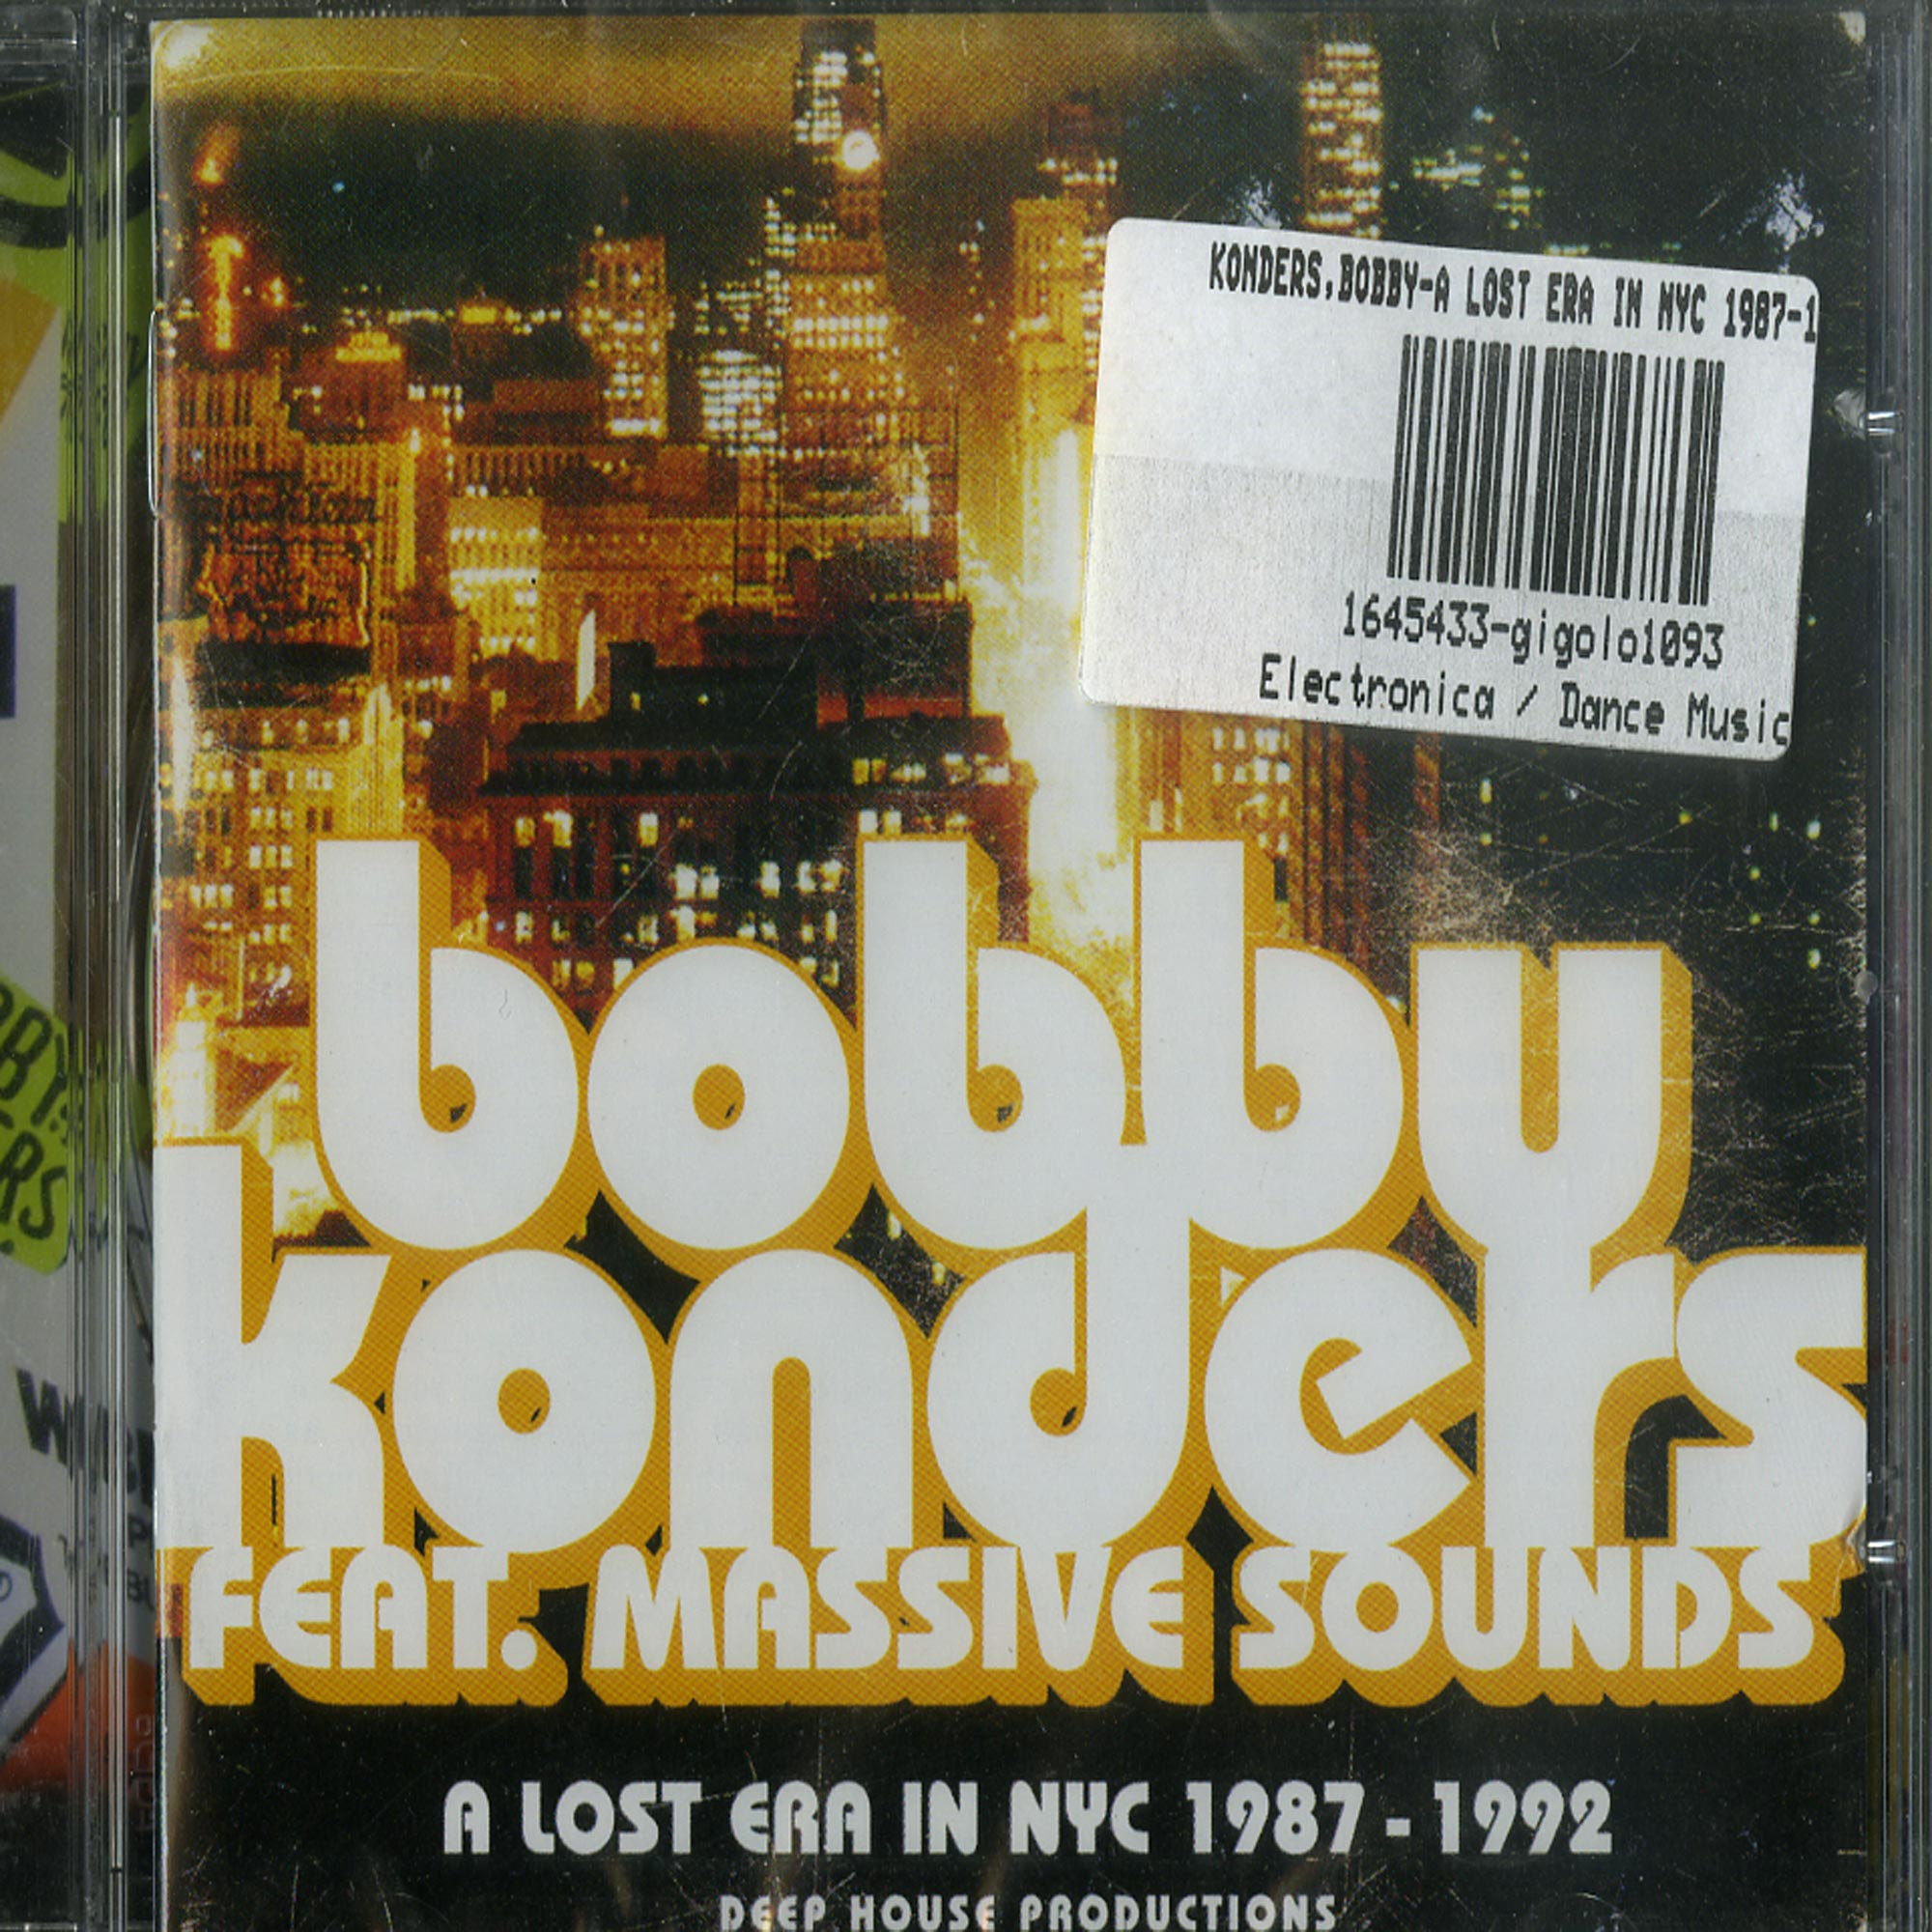 Bobby Konders feat. Massive Sounds - A LOST ERA IN NYC 87-92